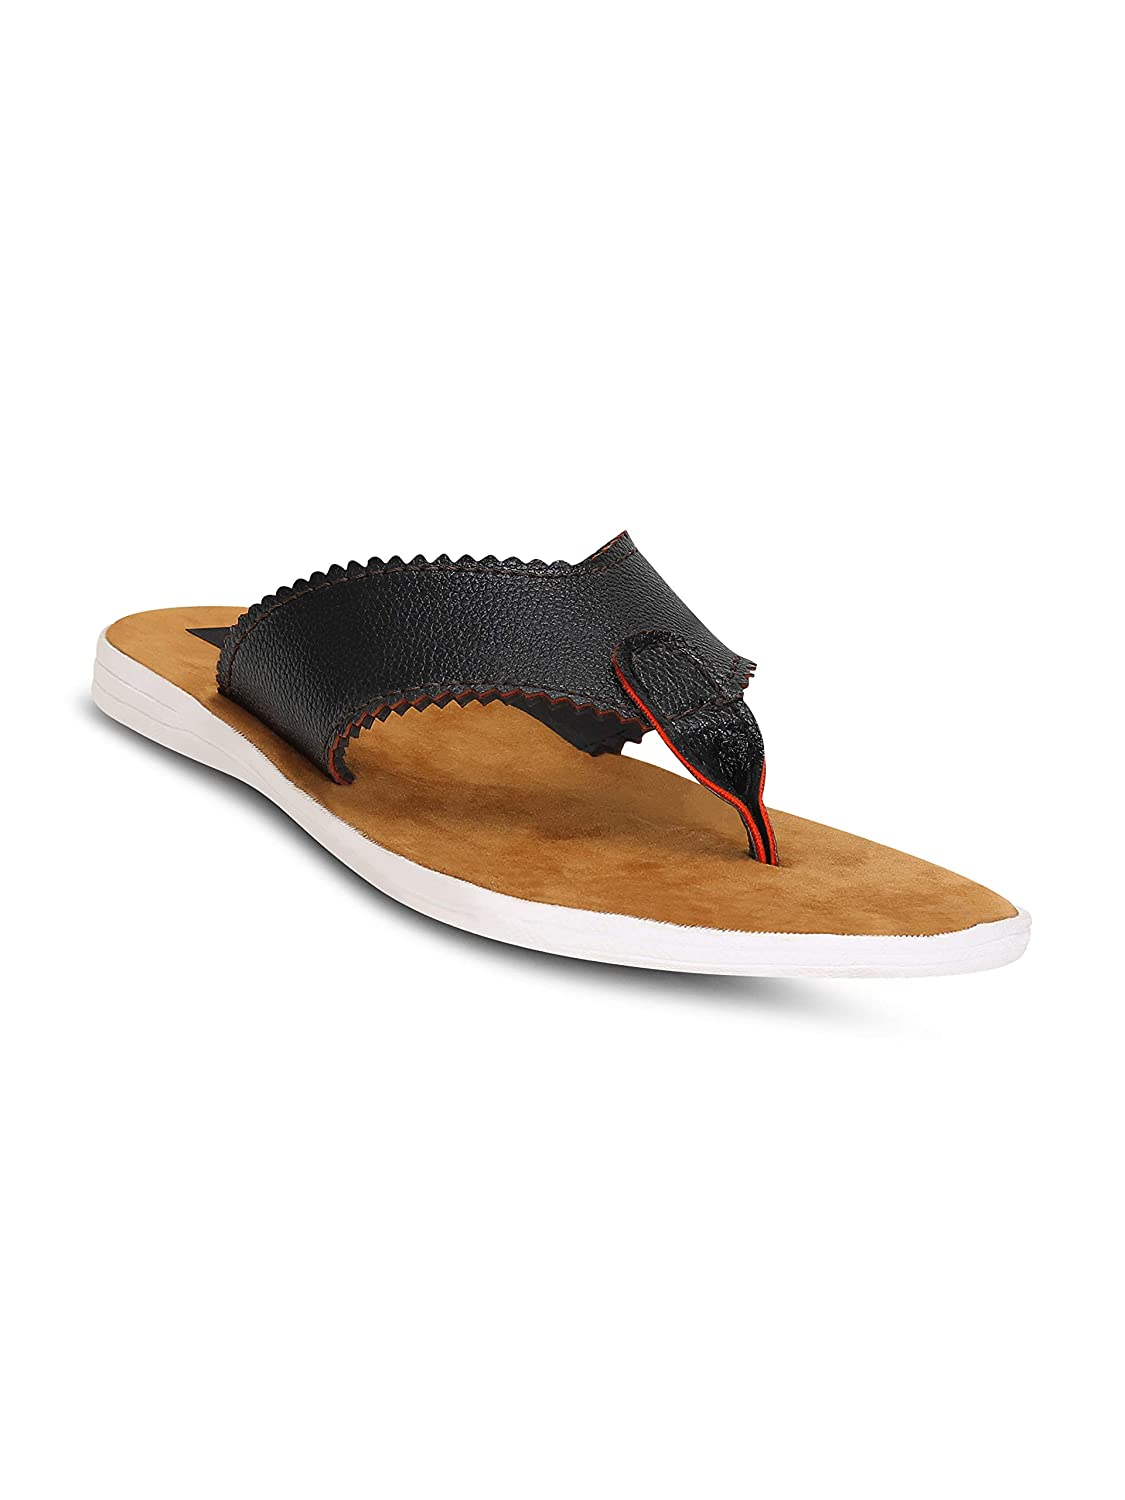 0fc22ff823df59 Kielz Men s Synthetic Sandals  Buy Online at Low Prices in India - Amazon.in